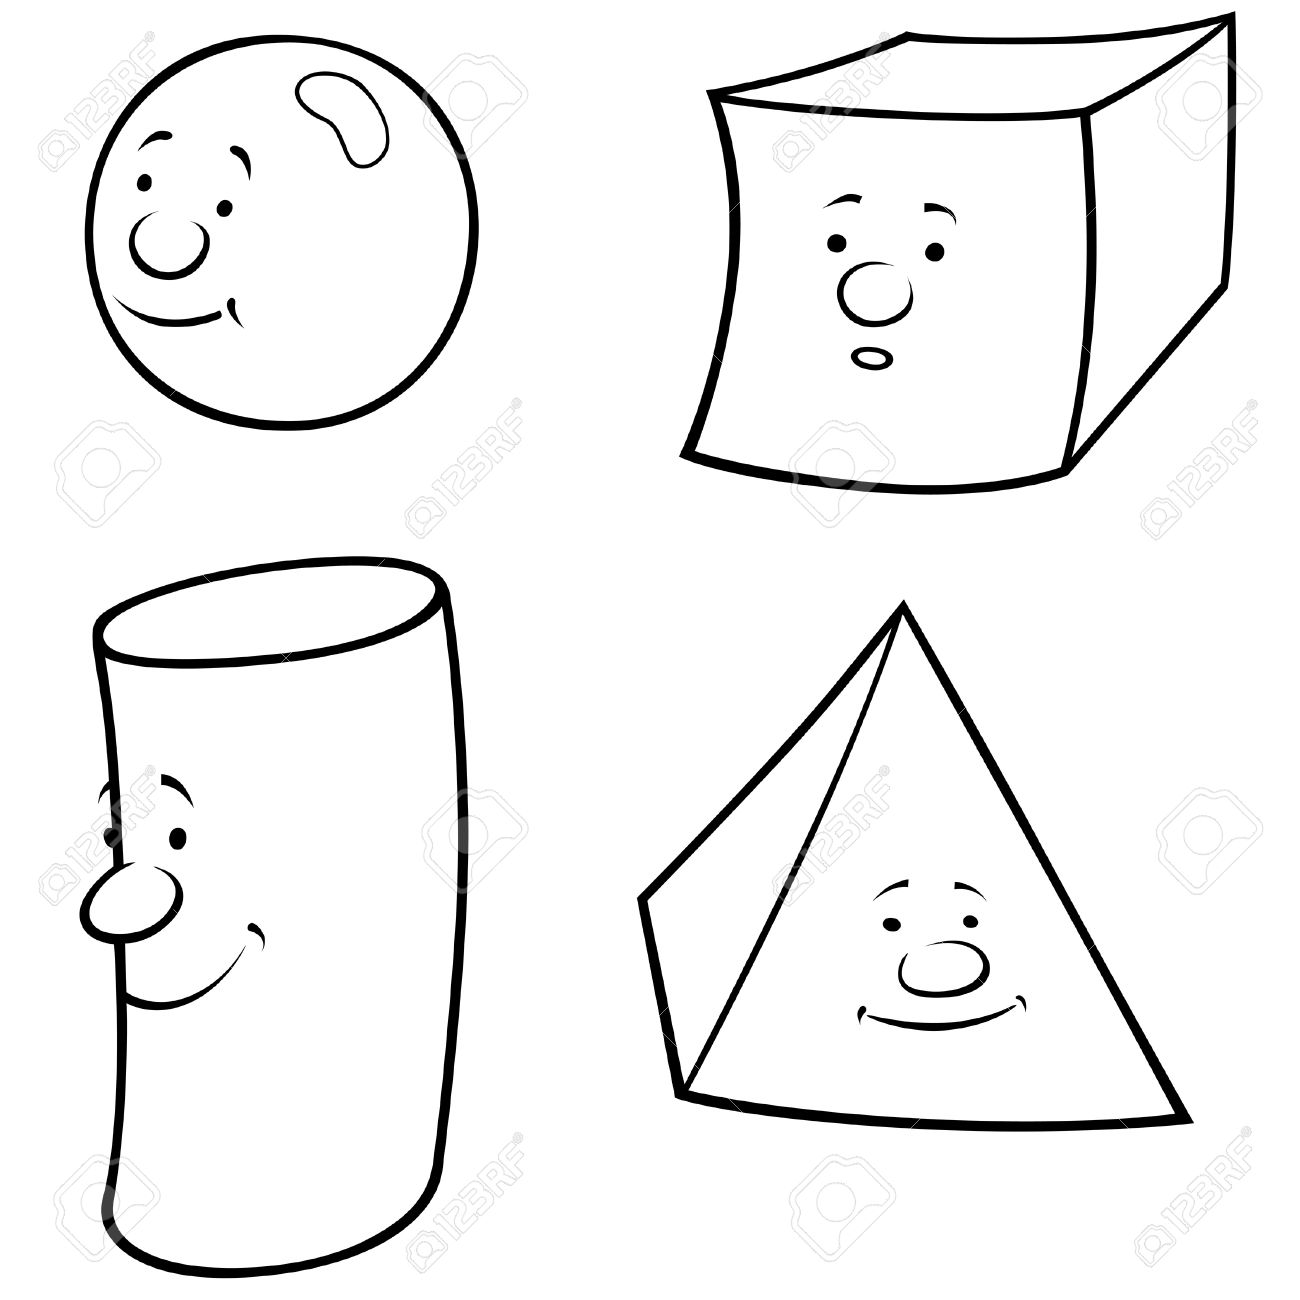 Geometric Shapes - Black And White Cartoon Illustration, Vector ...